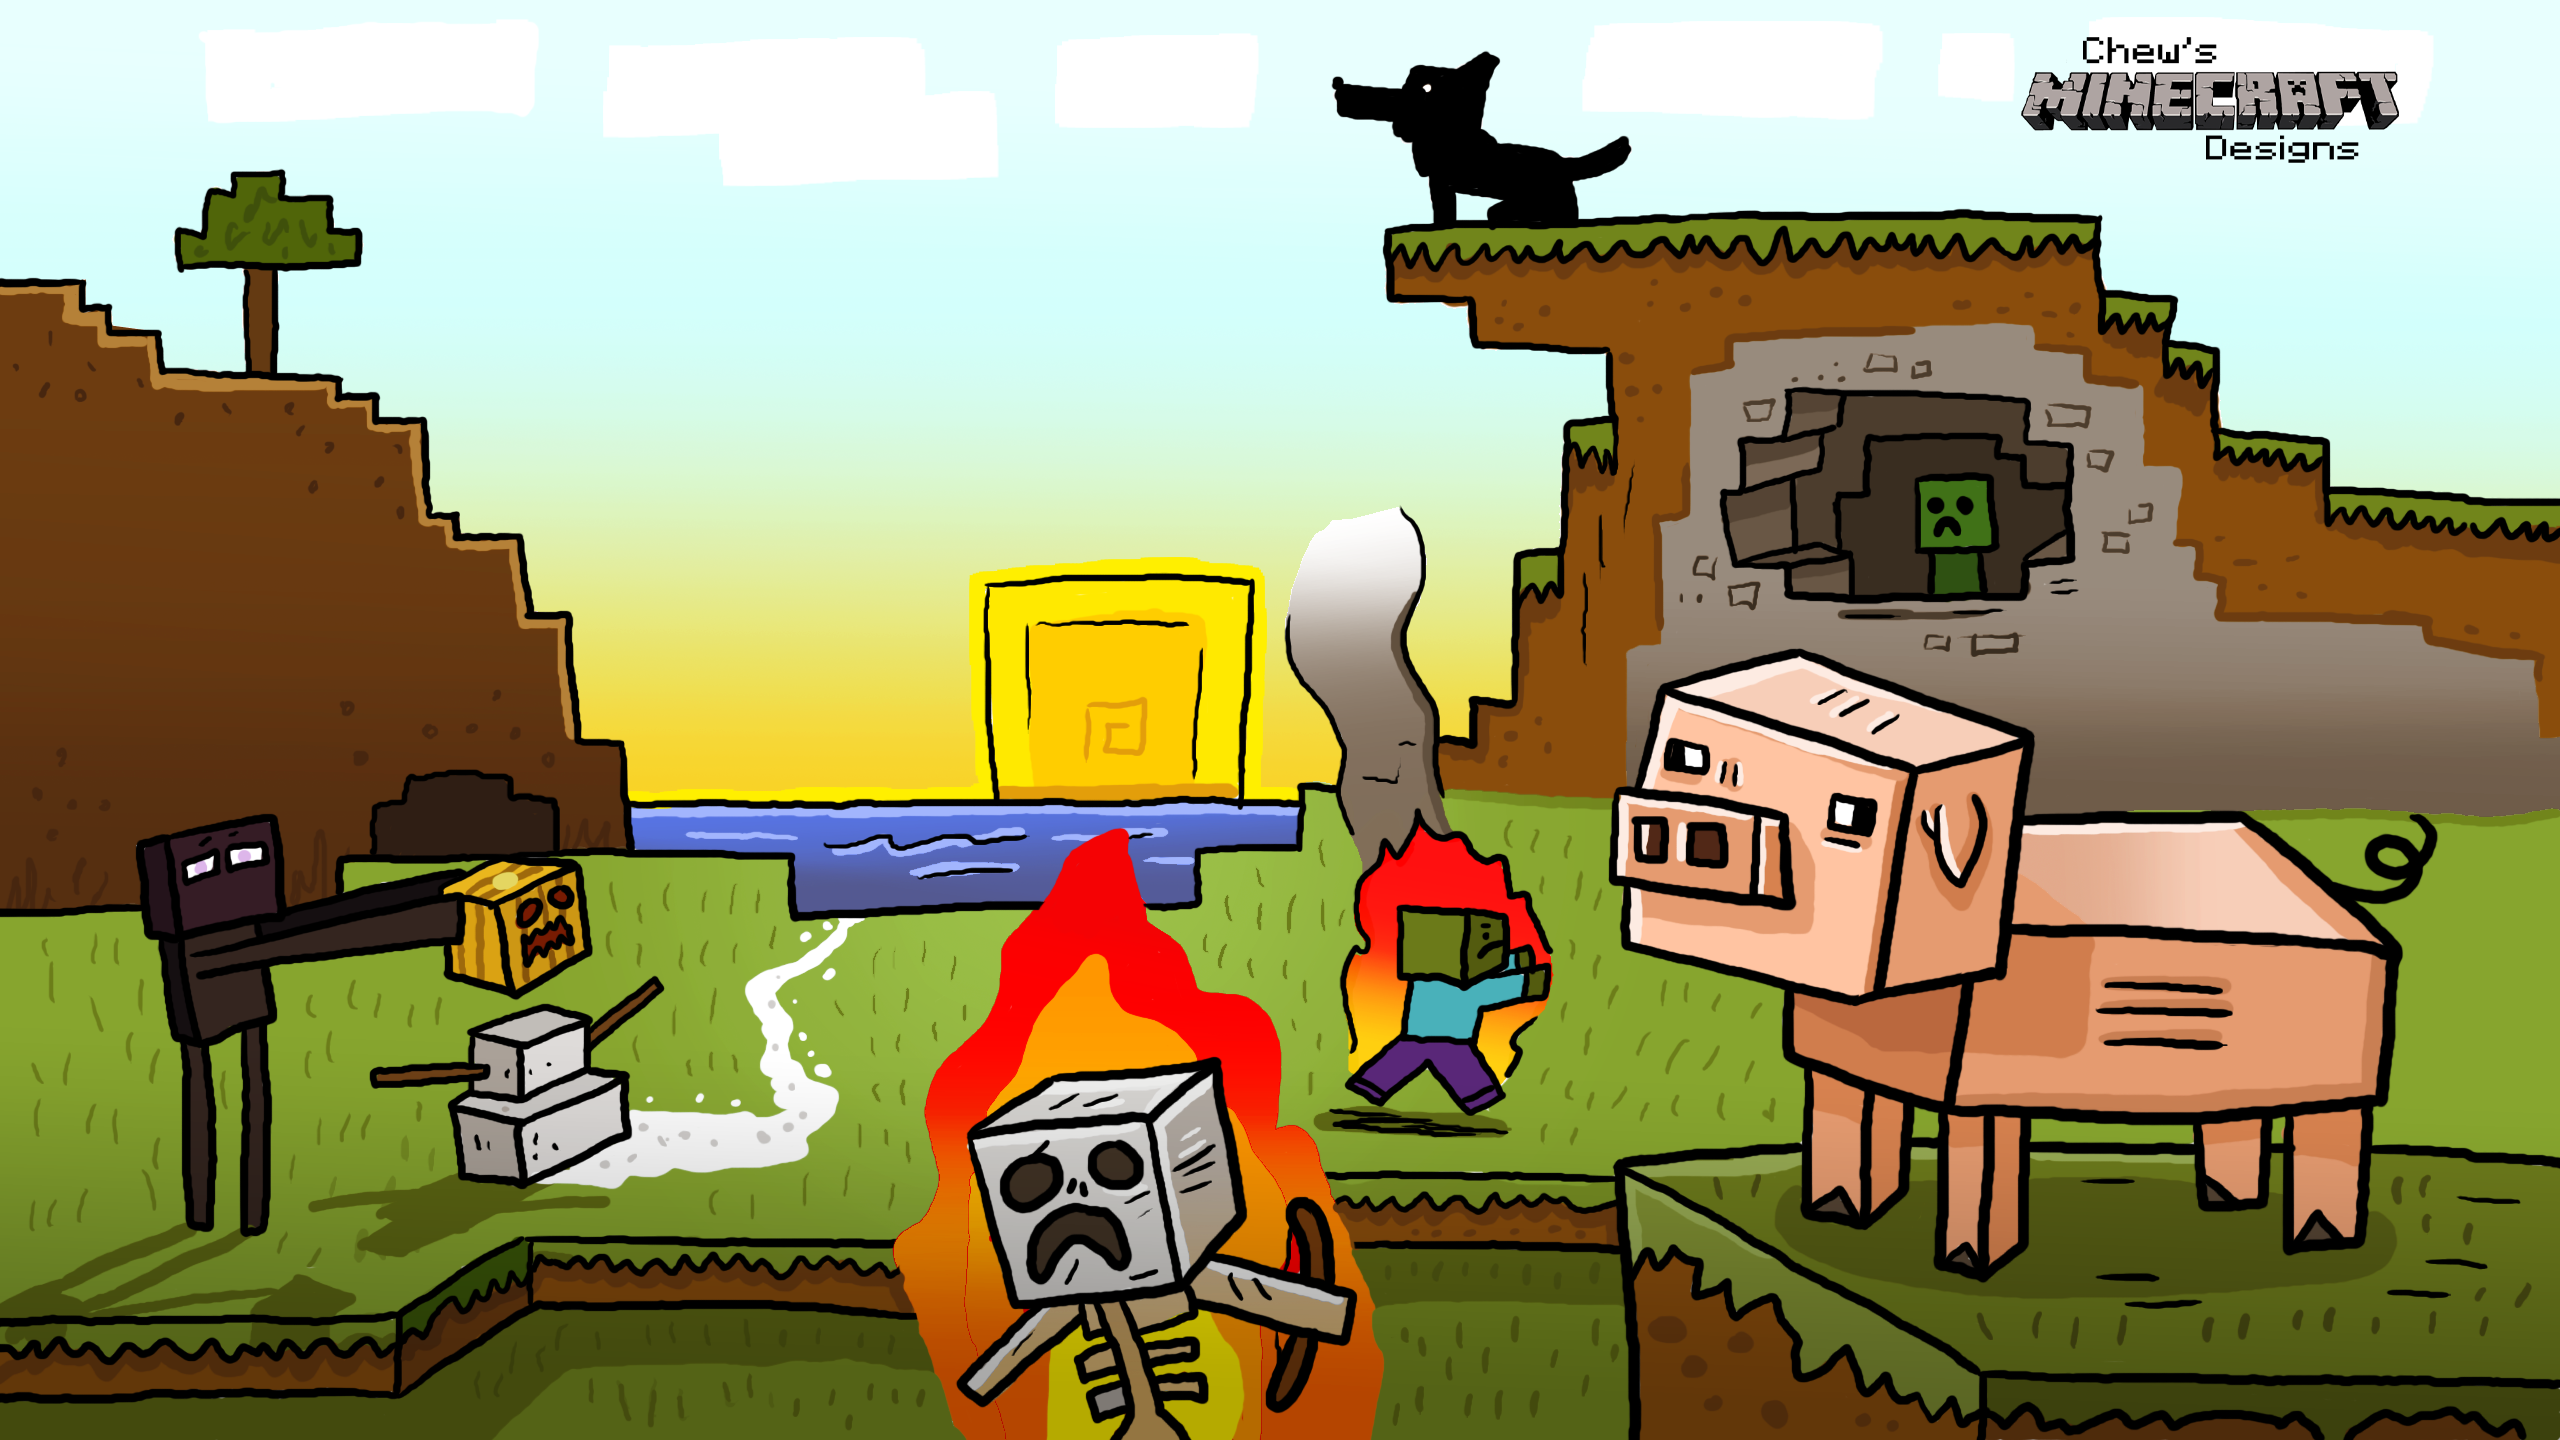 wallpaper by chewtoons on youtube Photo in Abedanger Minecraft 2560x1440